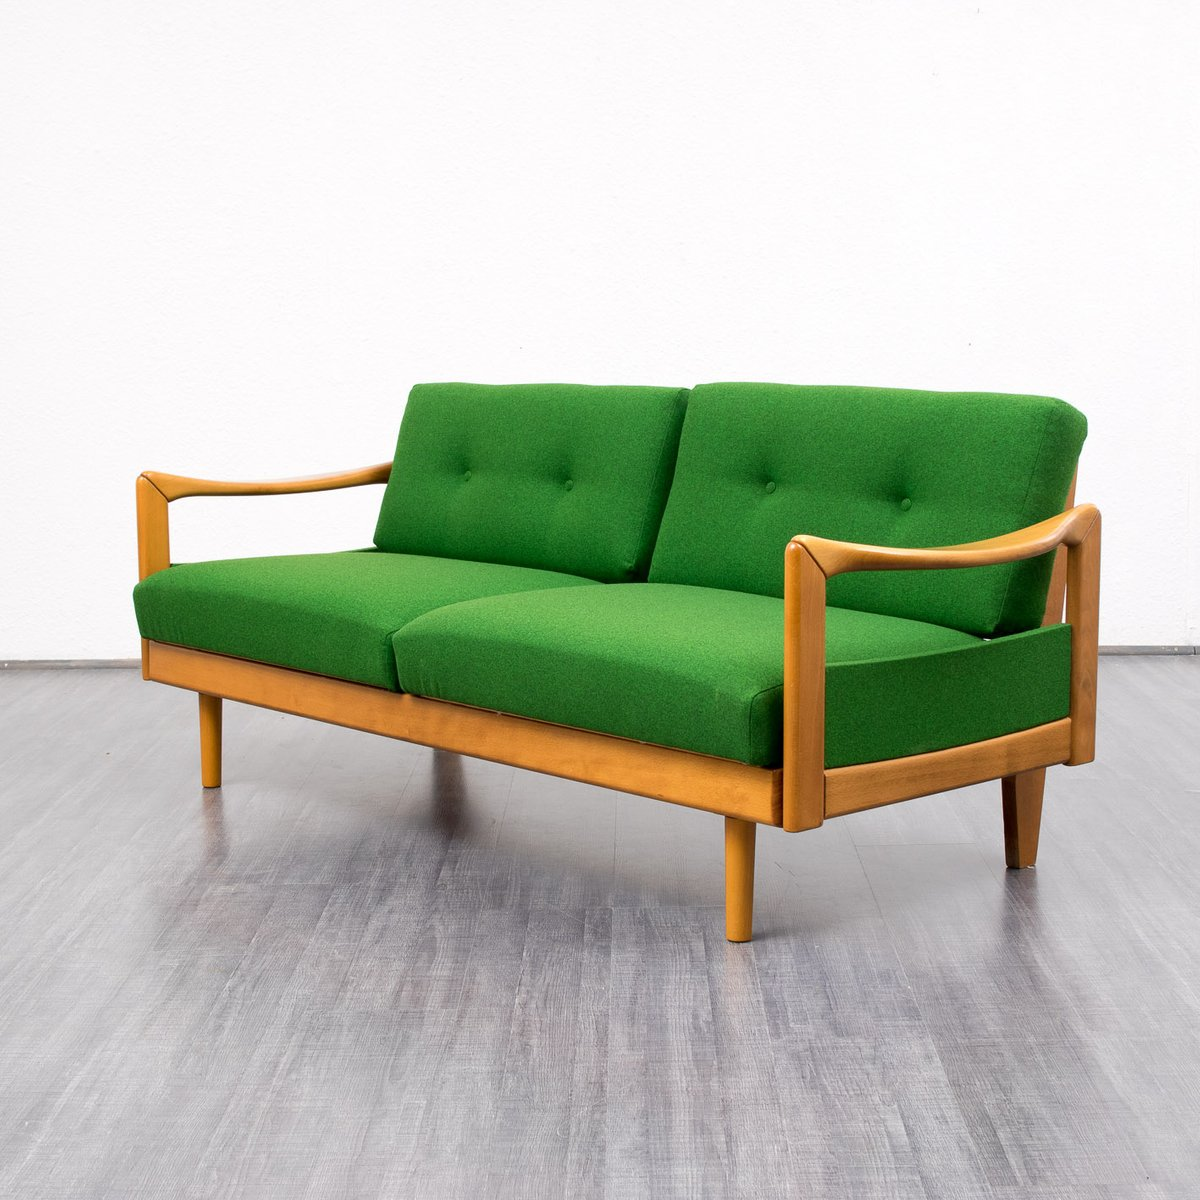 vintage green sofa 1960s for sale at pamono. Black Bedroom Furniture Sets. Home Design Ideas